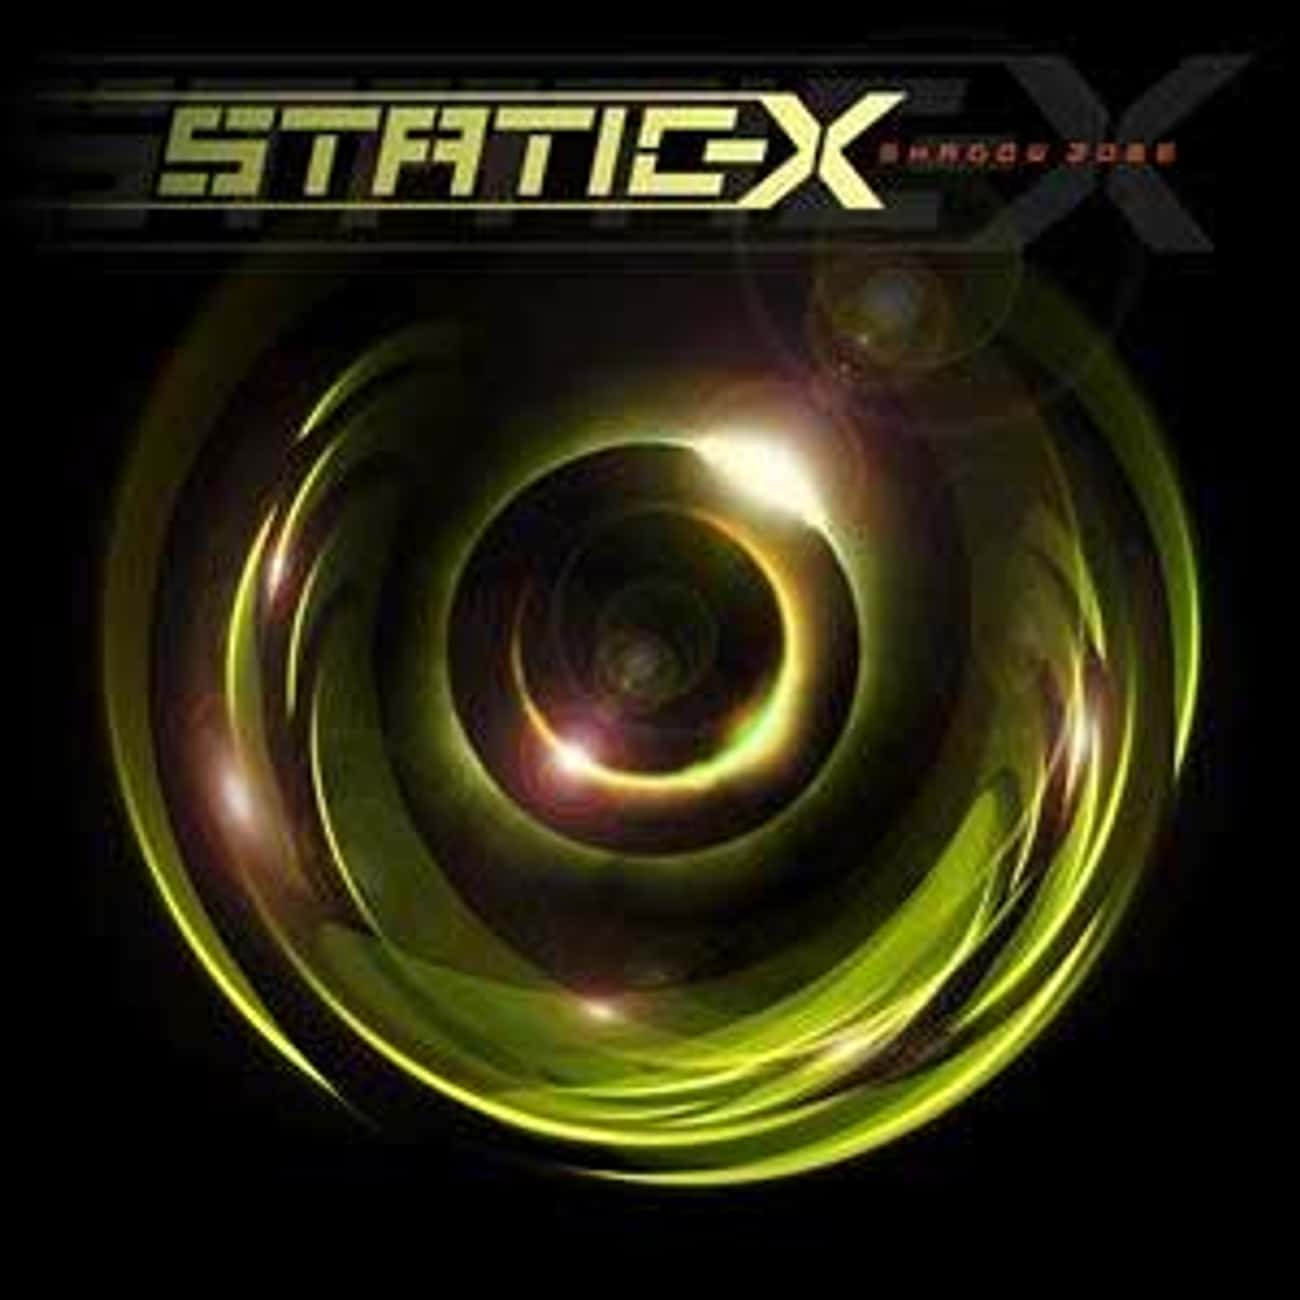 Shadow Zone is listed (or ranked) 3 on the list The Best Static-X Albums of All Time